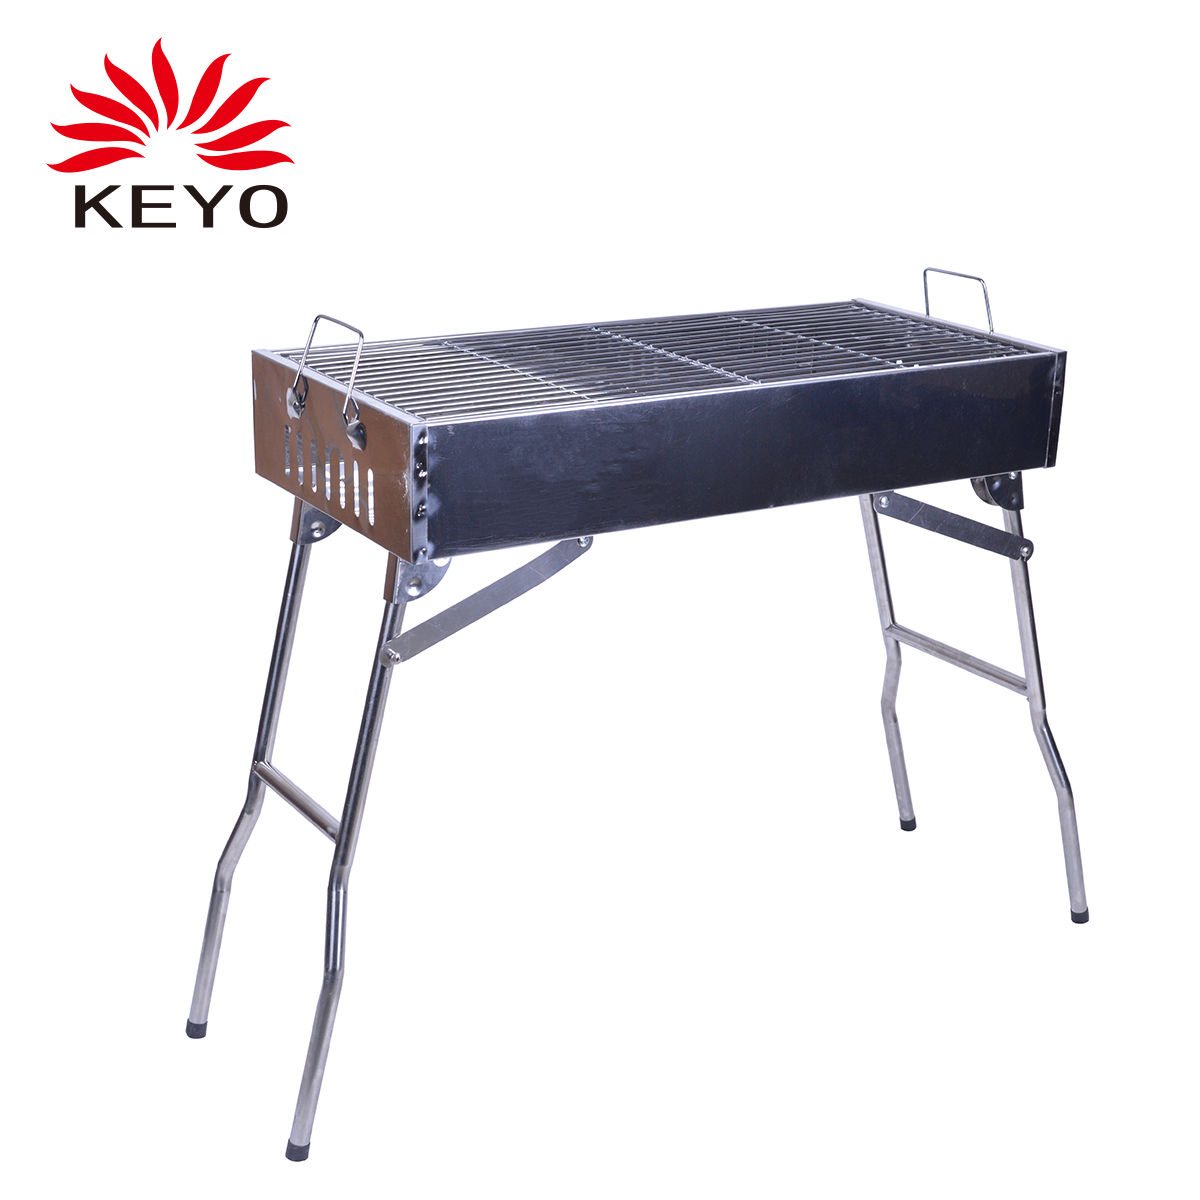 KY1819 Charcoal grill